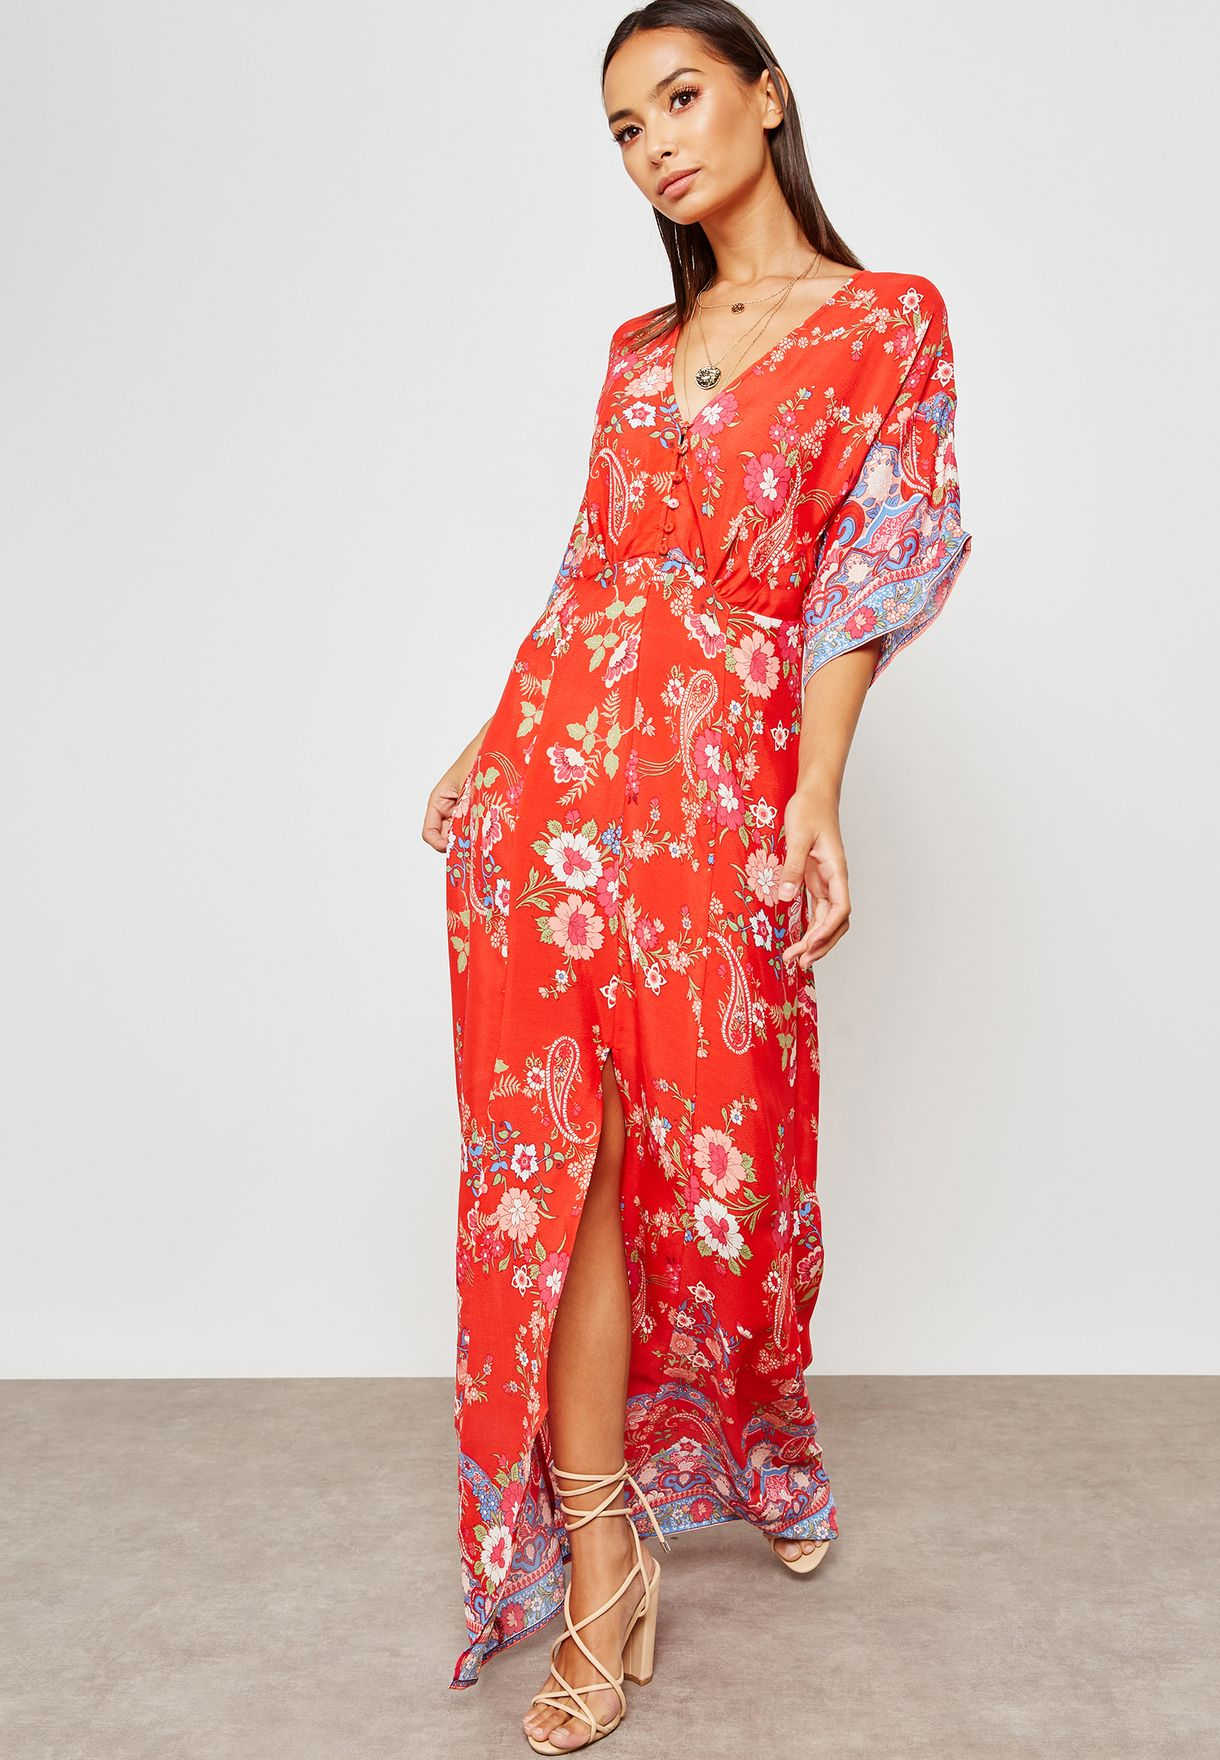 58834a55f Shop Miss Selfridge prints Printed Button Detail Kimono Maxi Dress ...